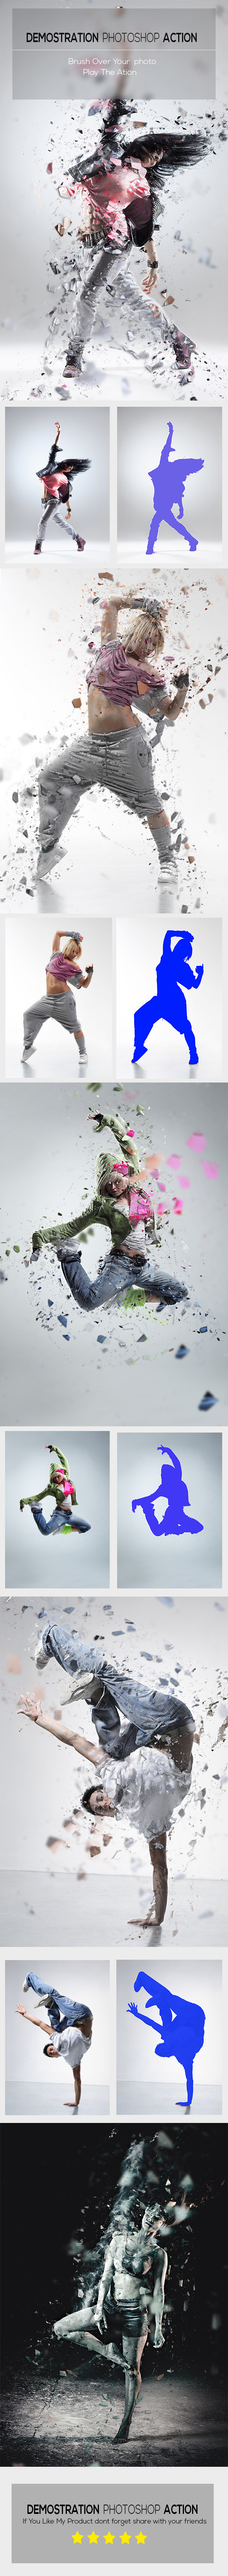 GraphicRiver Demostration Photoshop Action 10799854